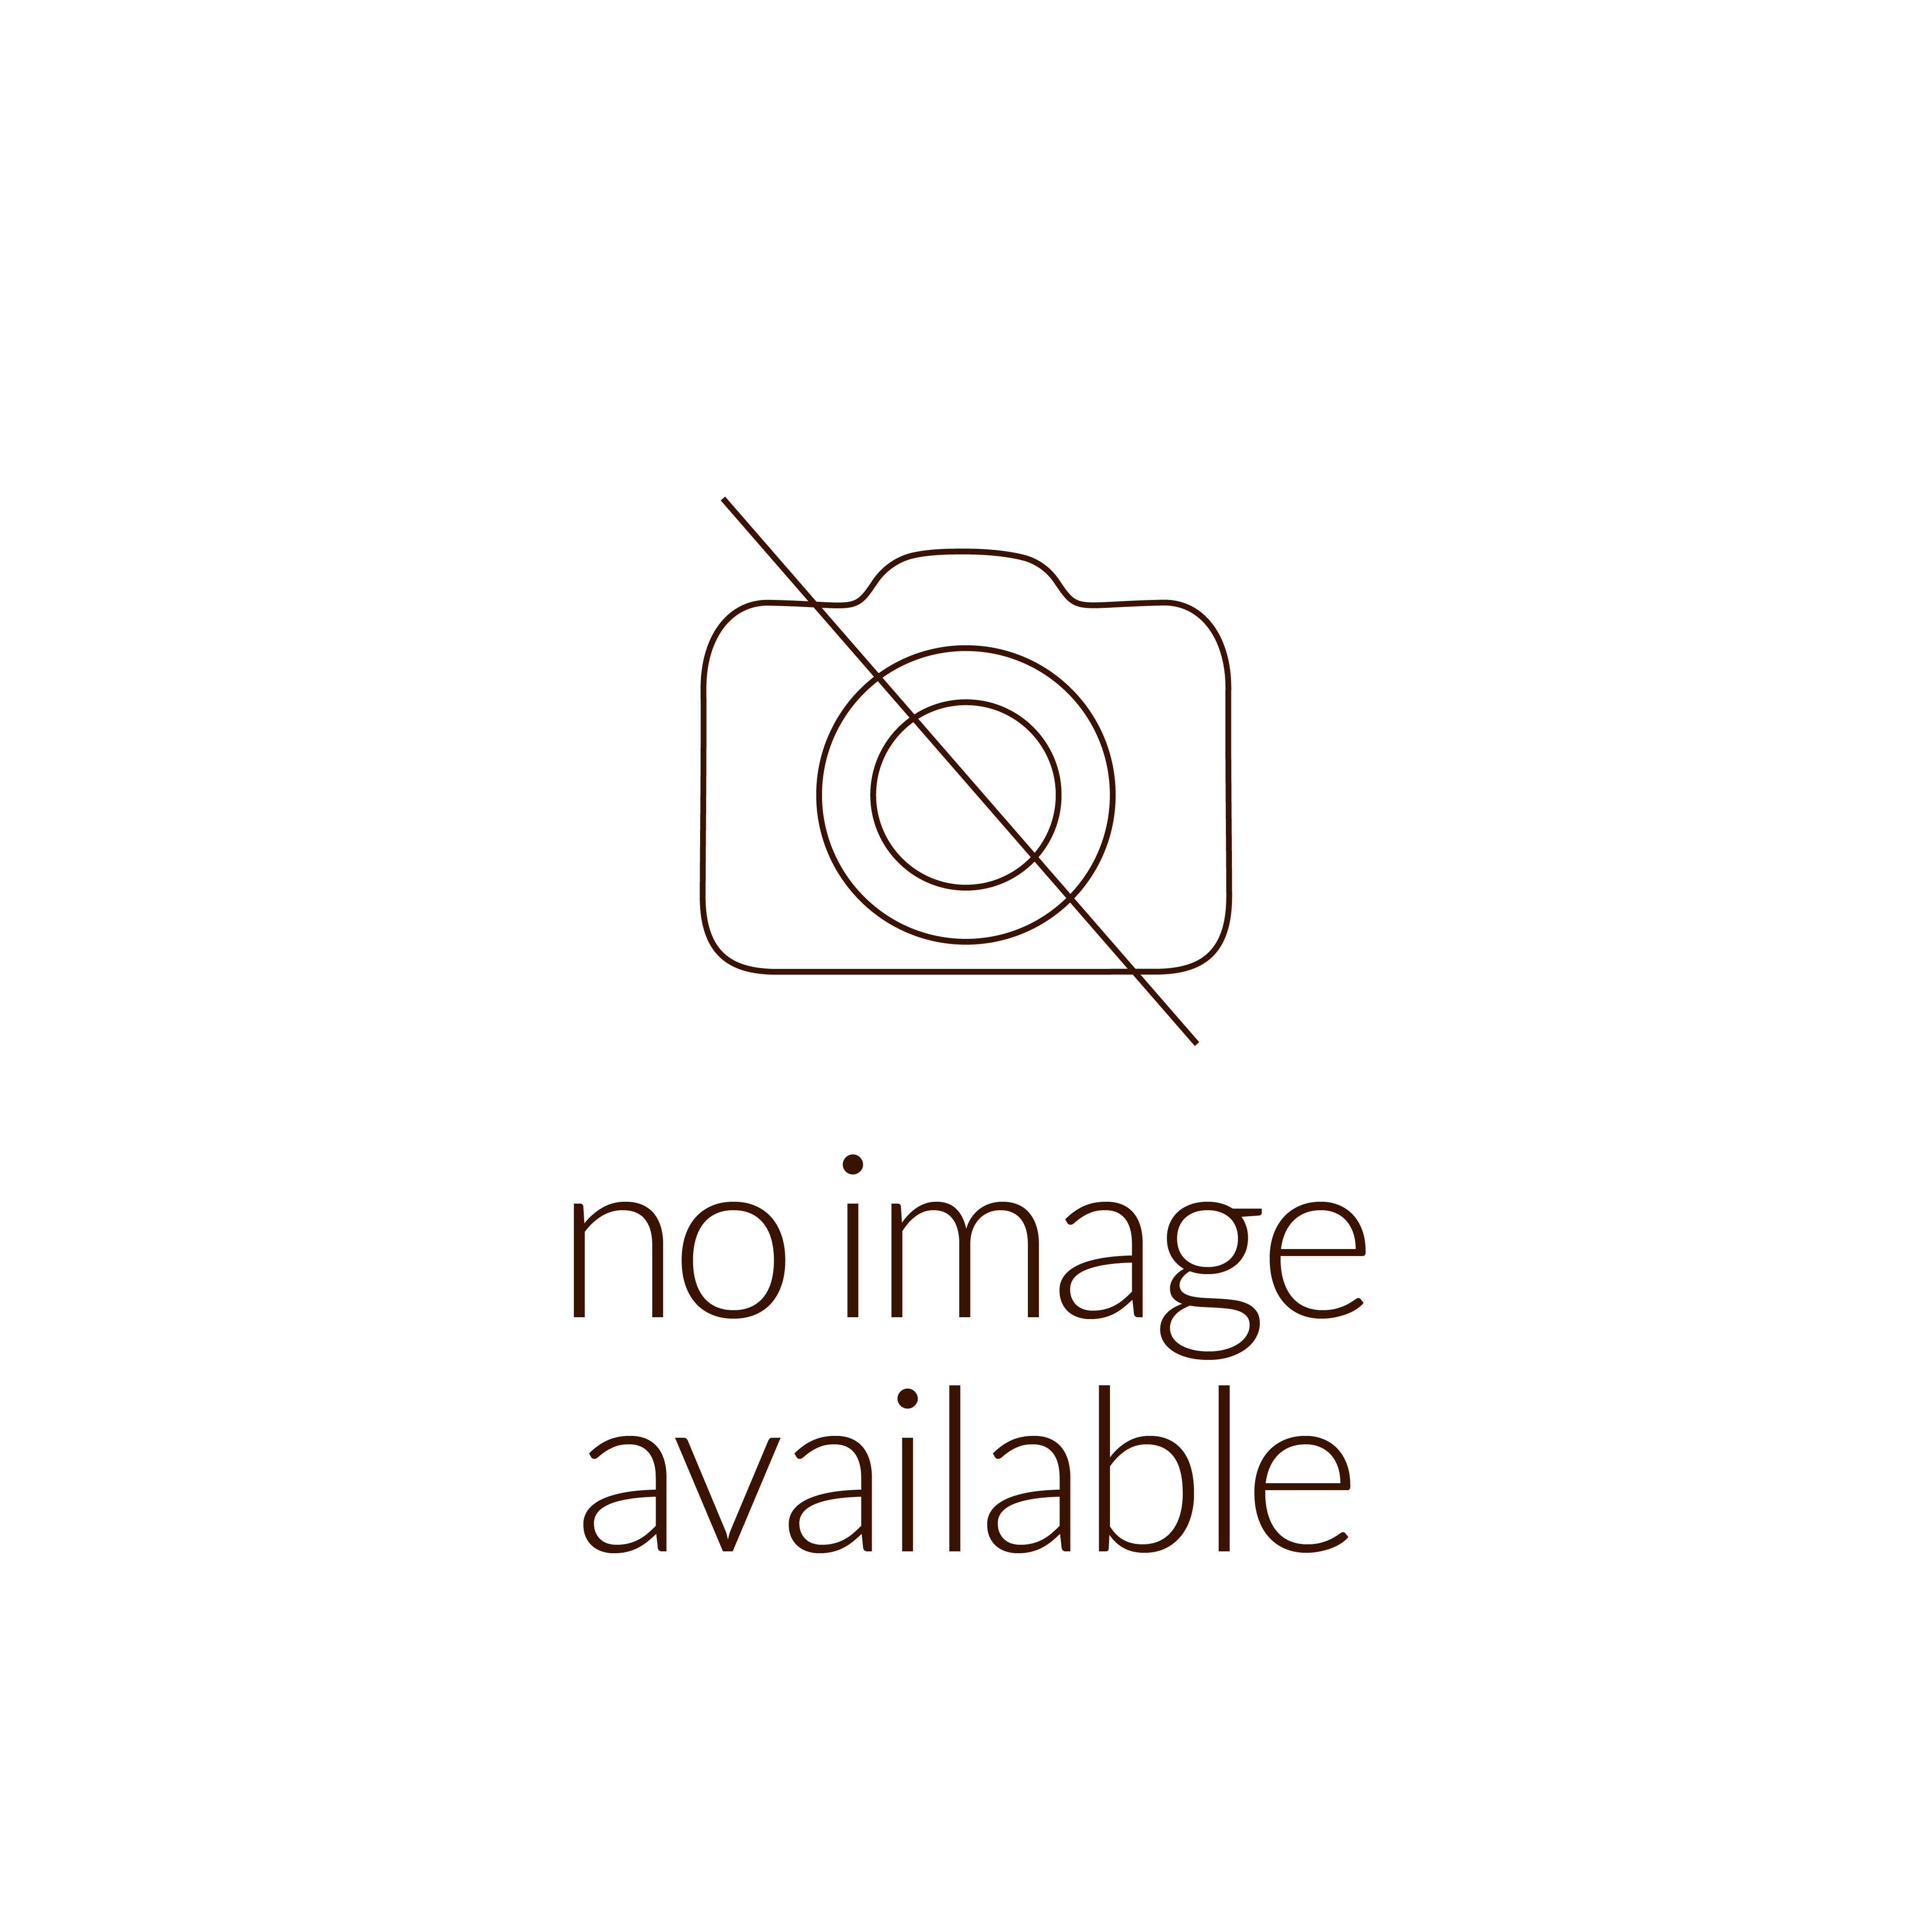 Flowers, Mane Katz - 70mm Bronze Medal with Lithograph Medal